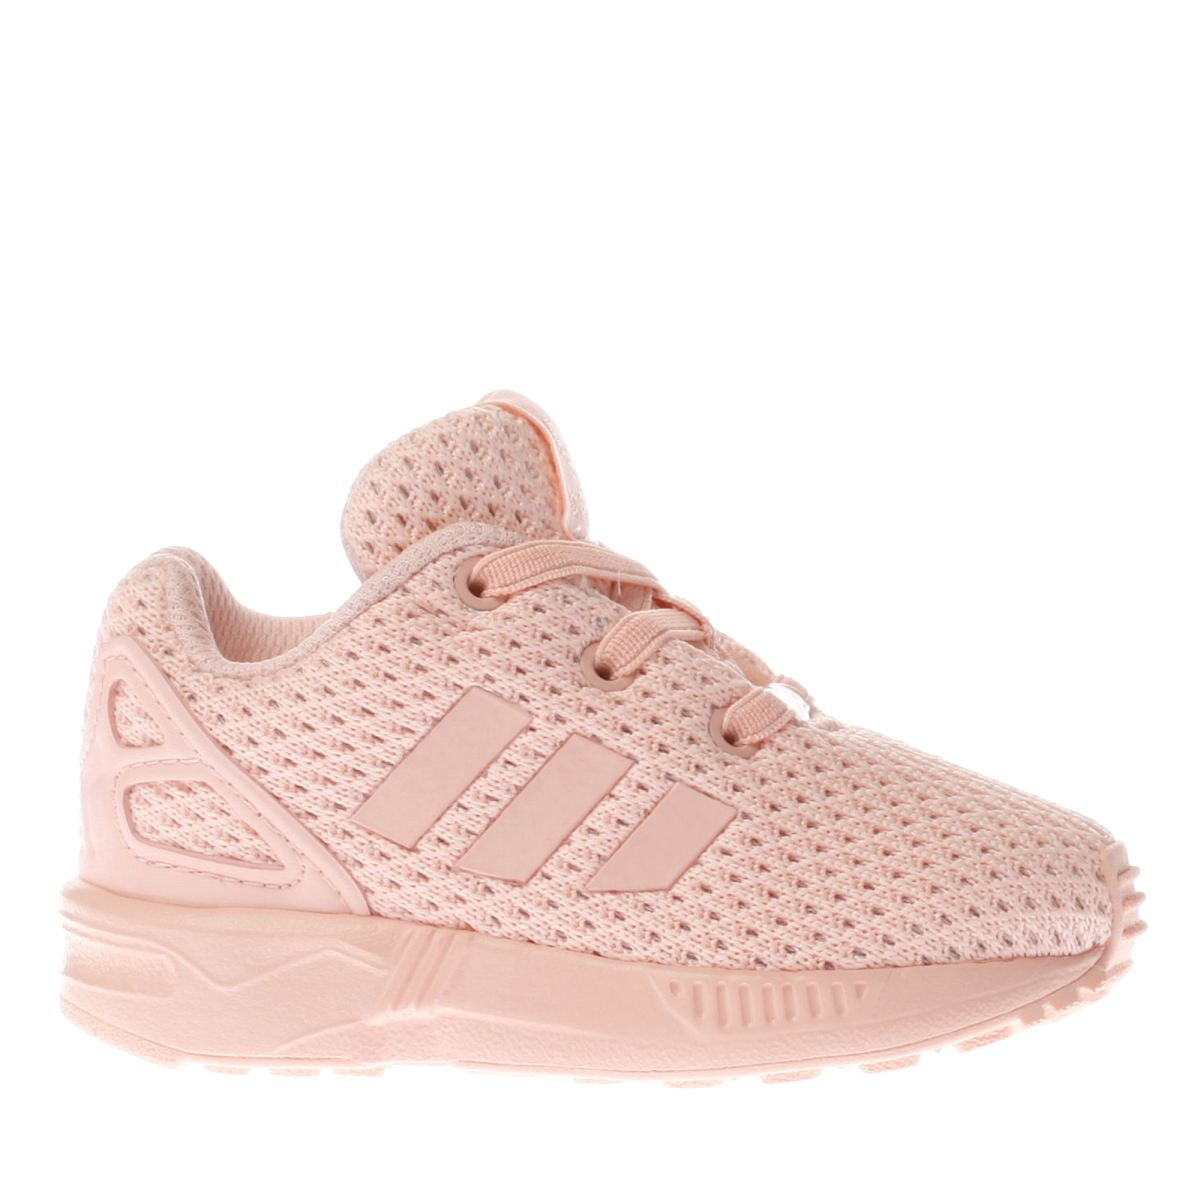 adidas pale pink zx flux Girls Toddler Trainers